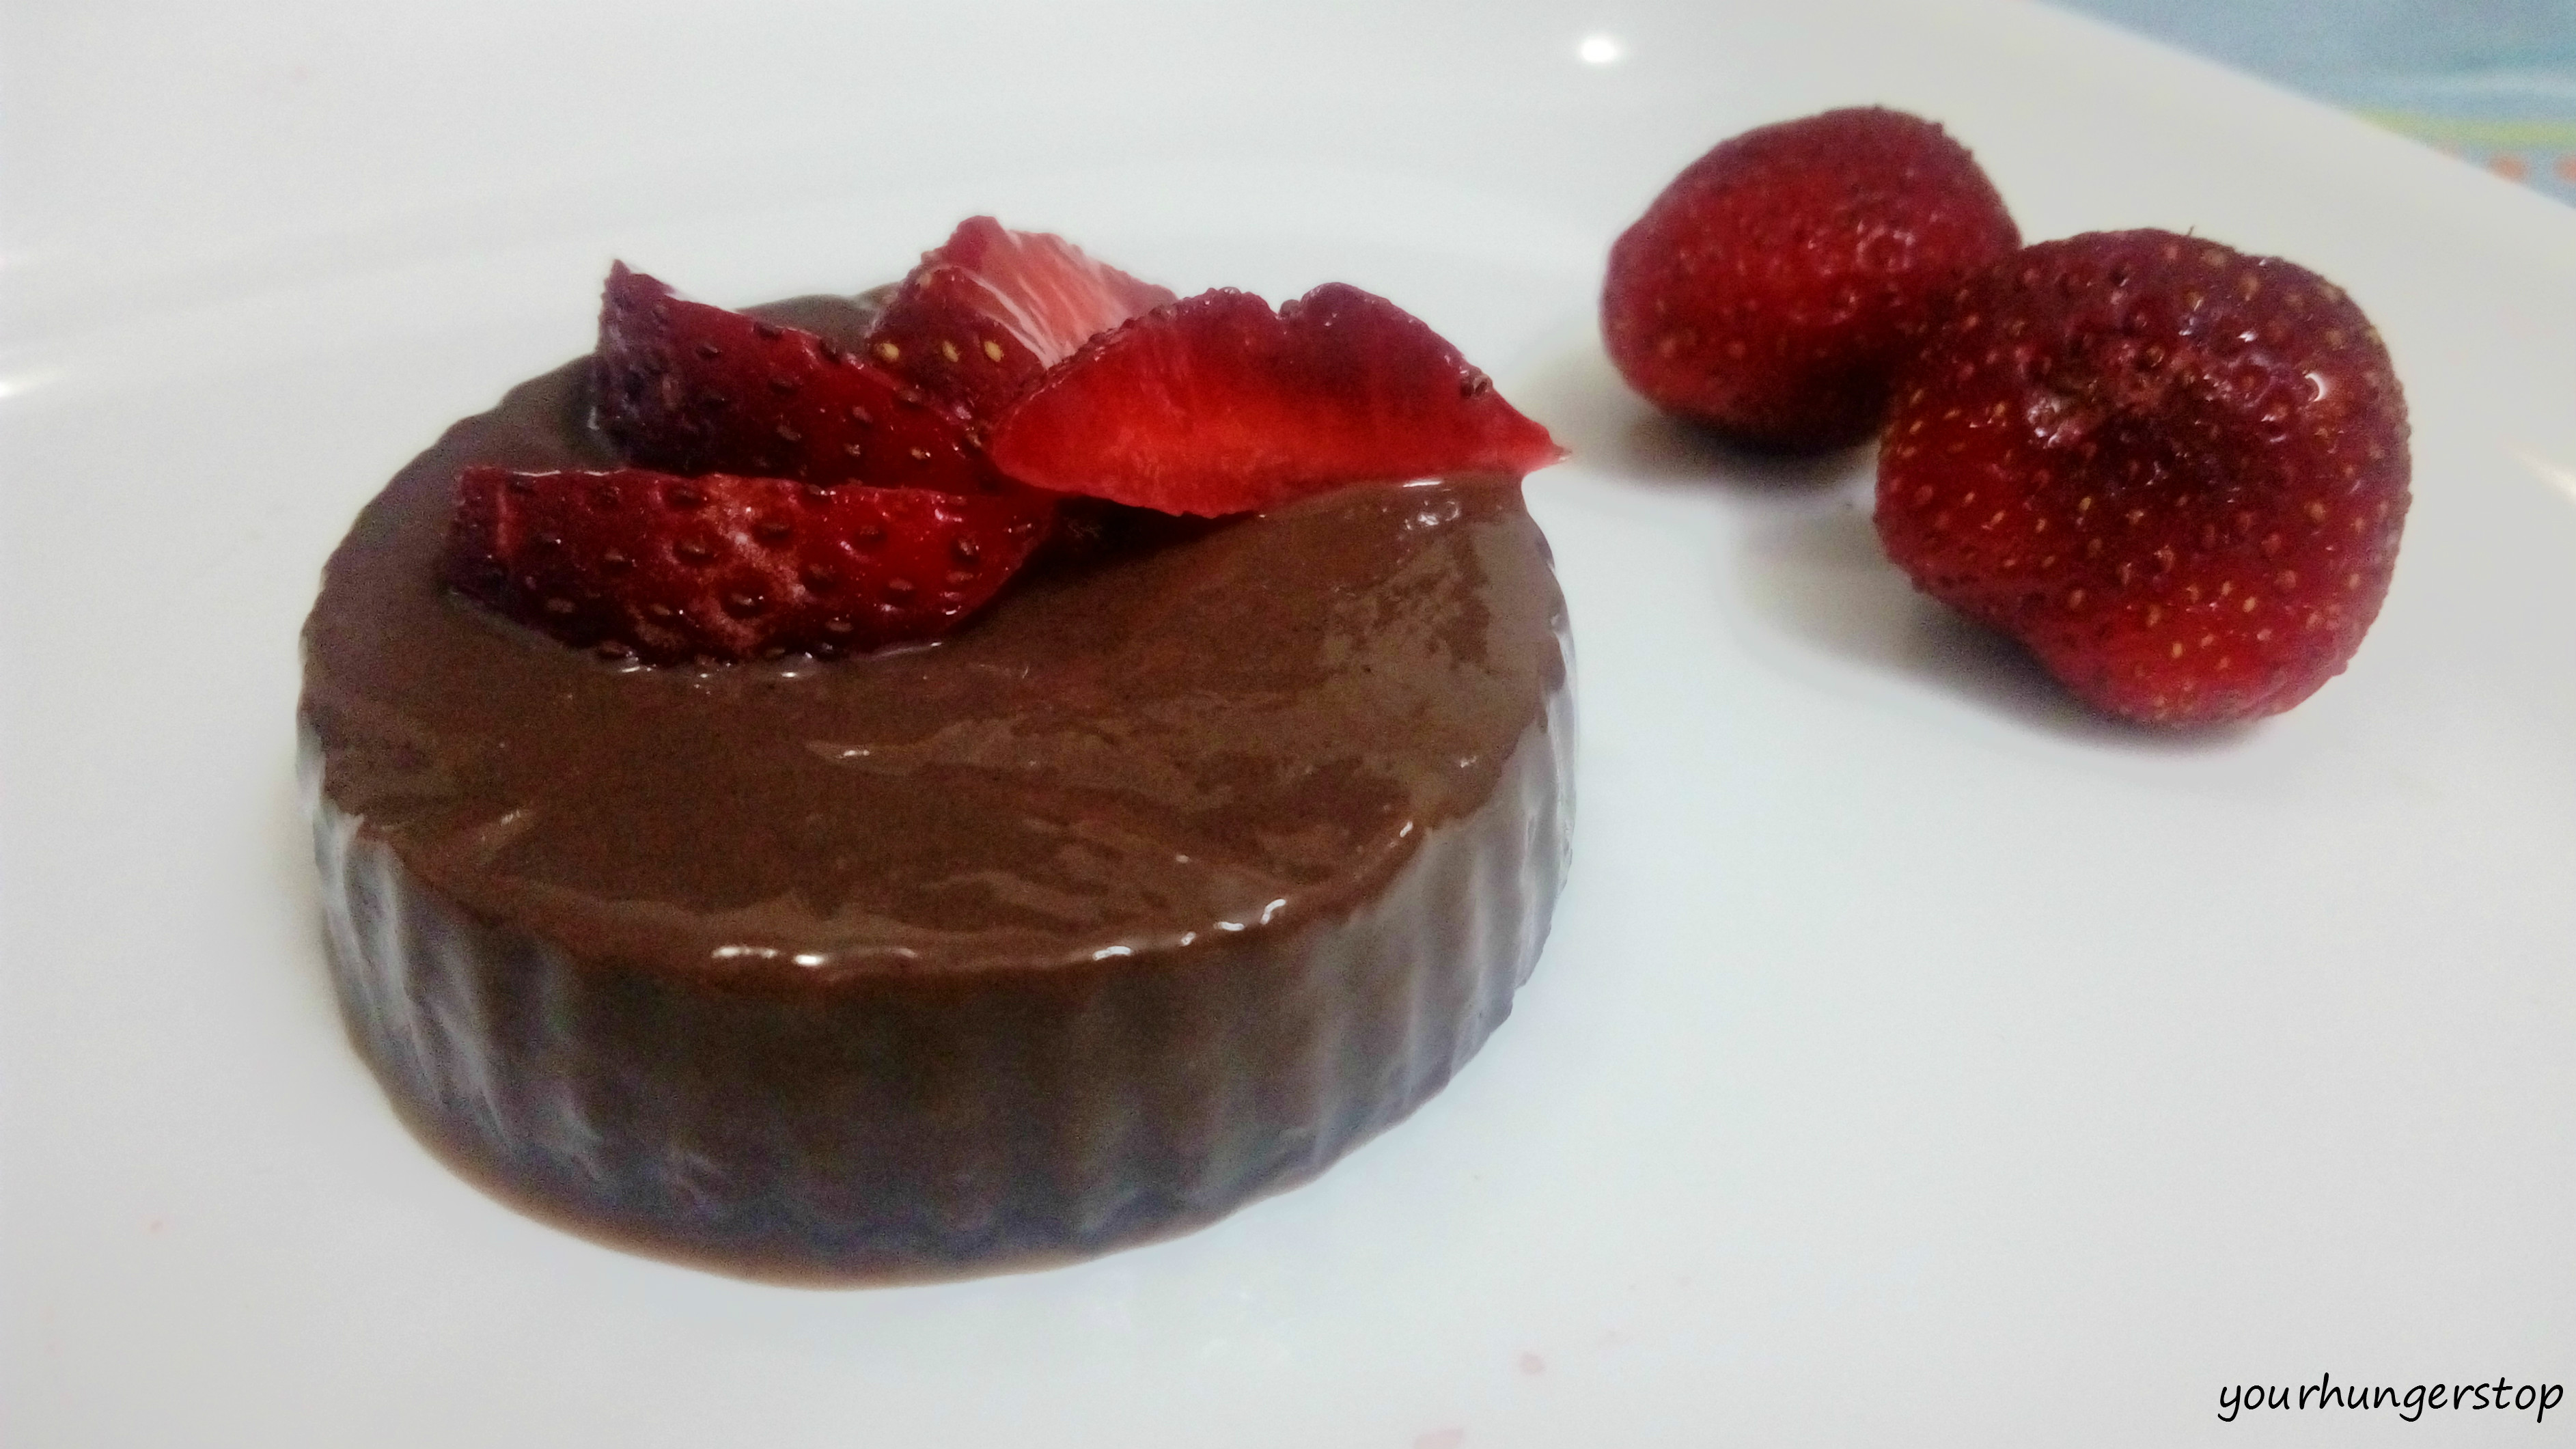 ... blancmange recipe here uses chocolate but you can have vanilla or